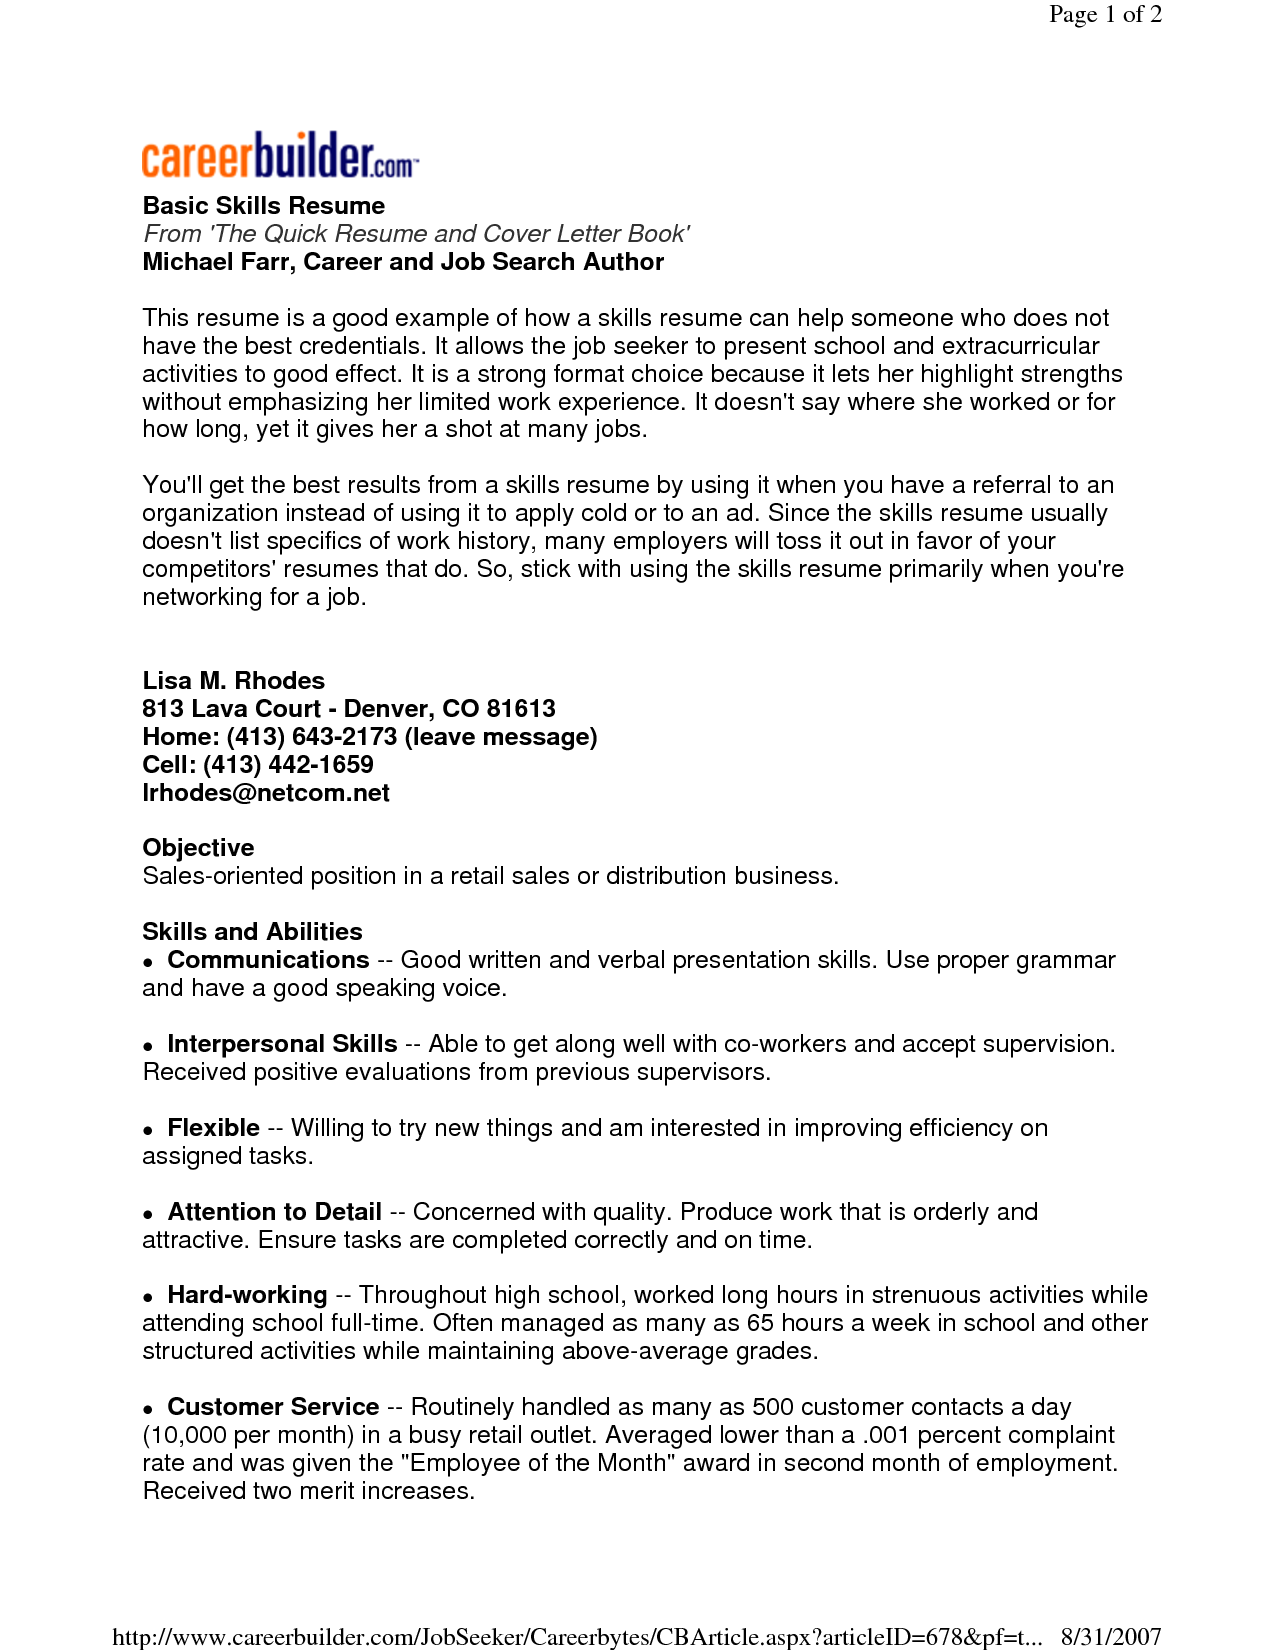 Areas Of Expertise Resume Examples Basic Resume Examples Skills  Httpwww.resumecareerbasic .